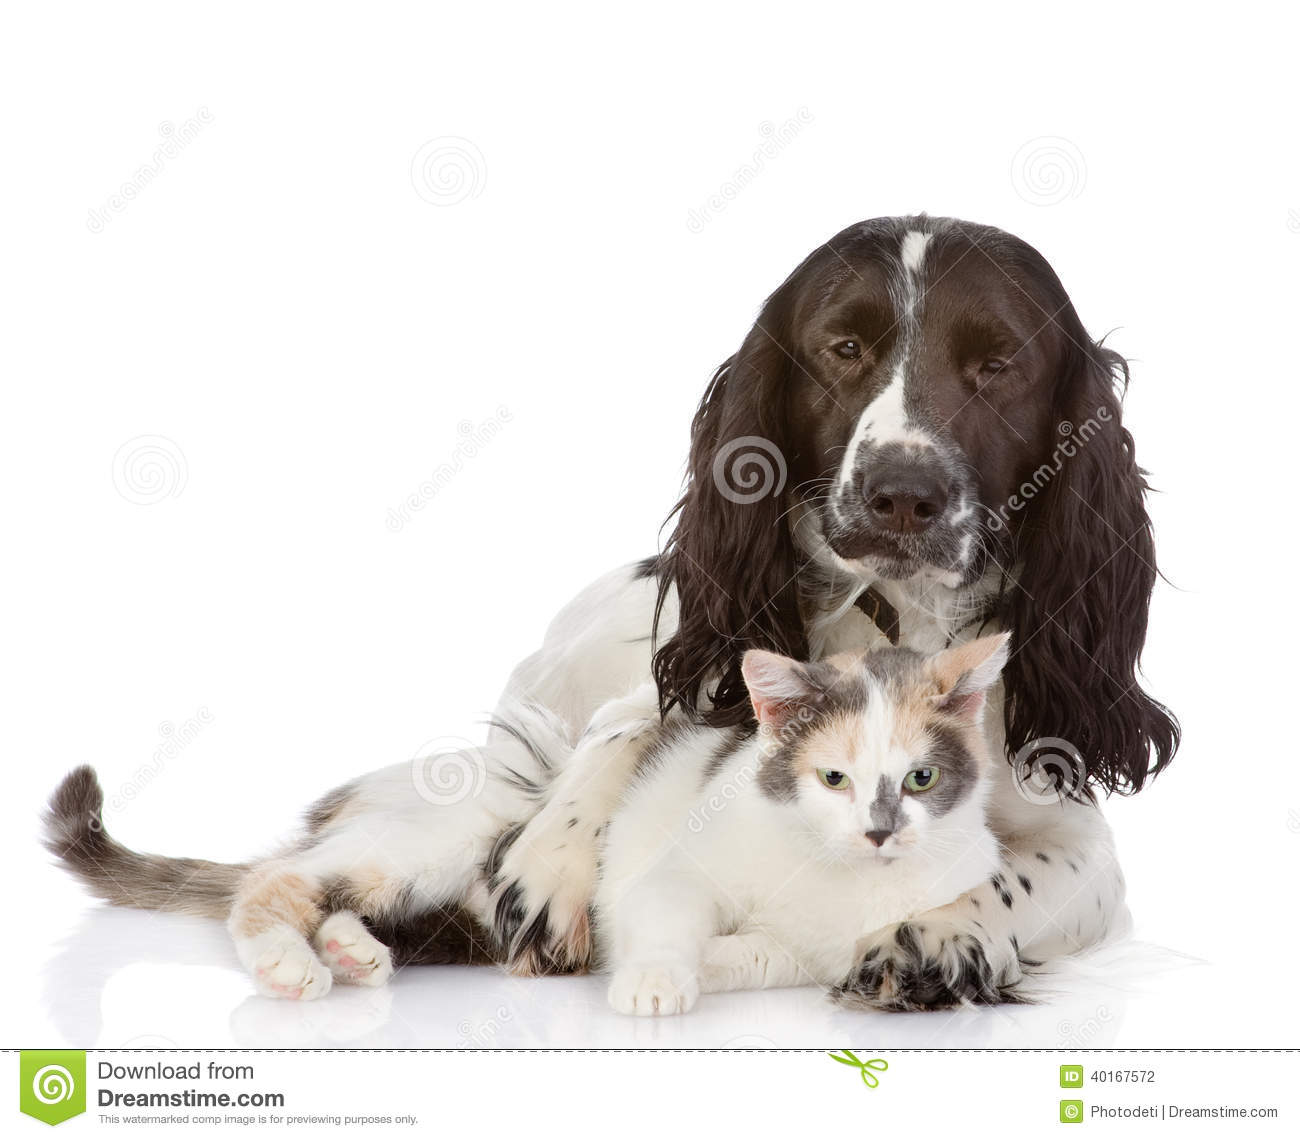 English Cocker Spaniel dog and kitten together